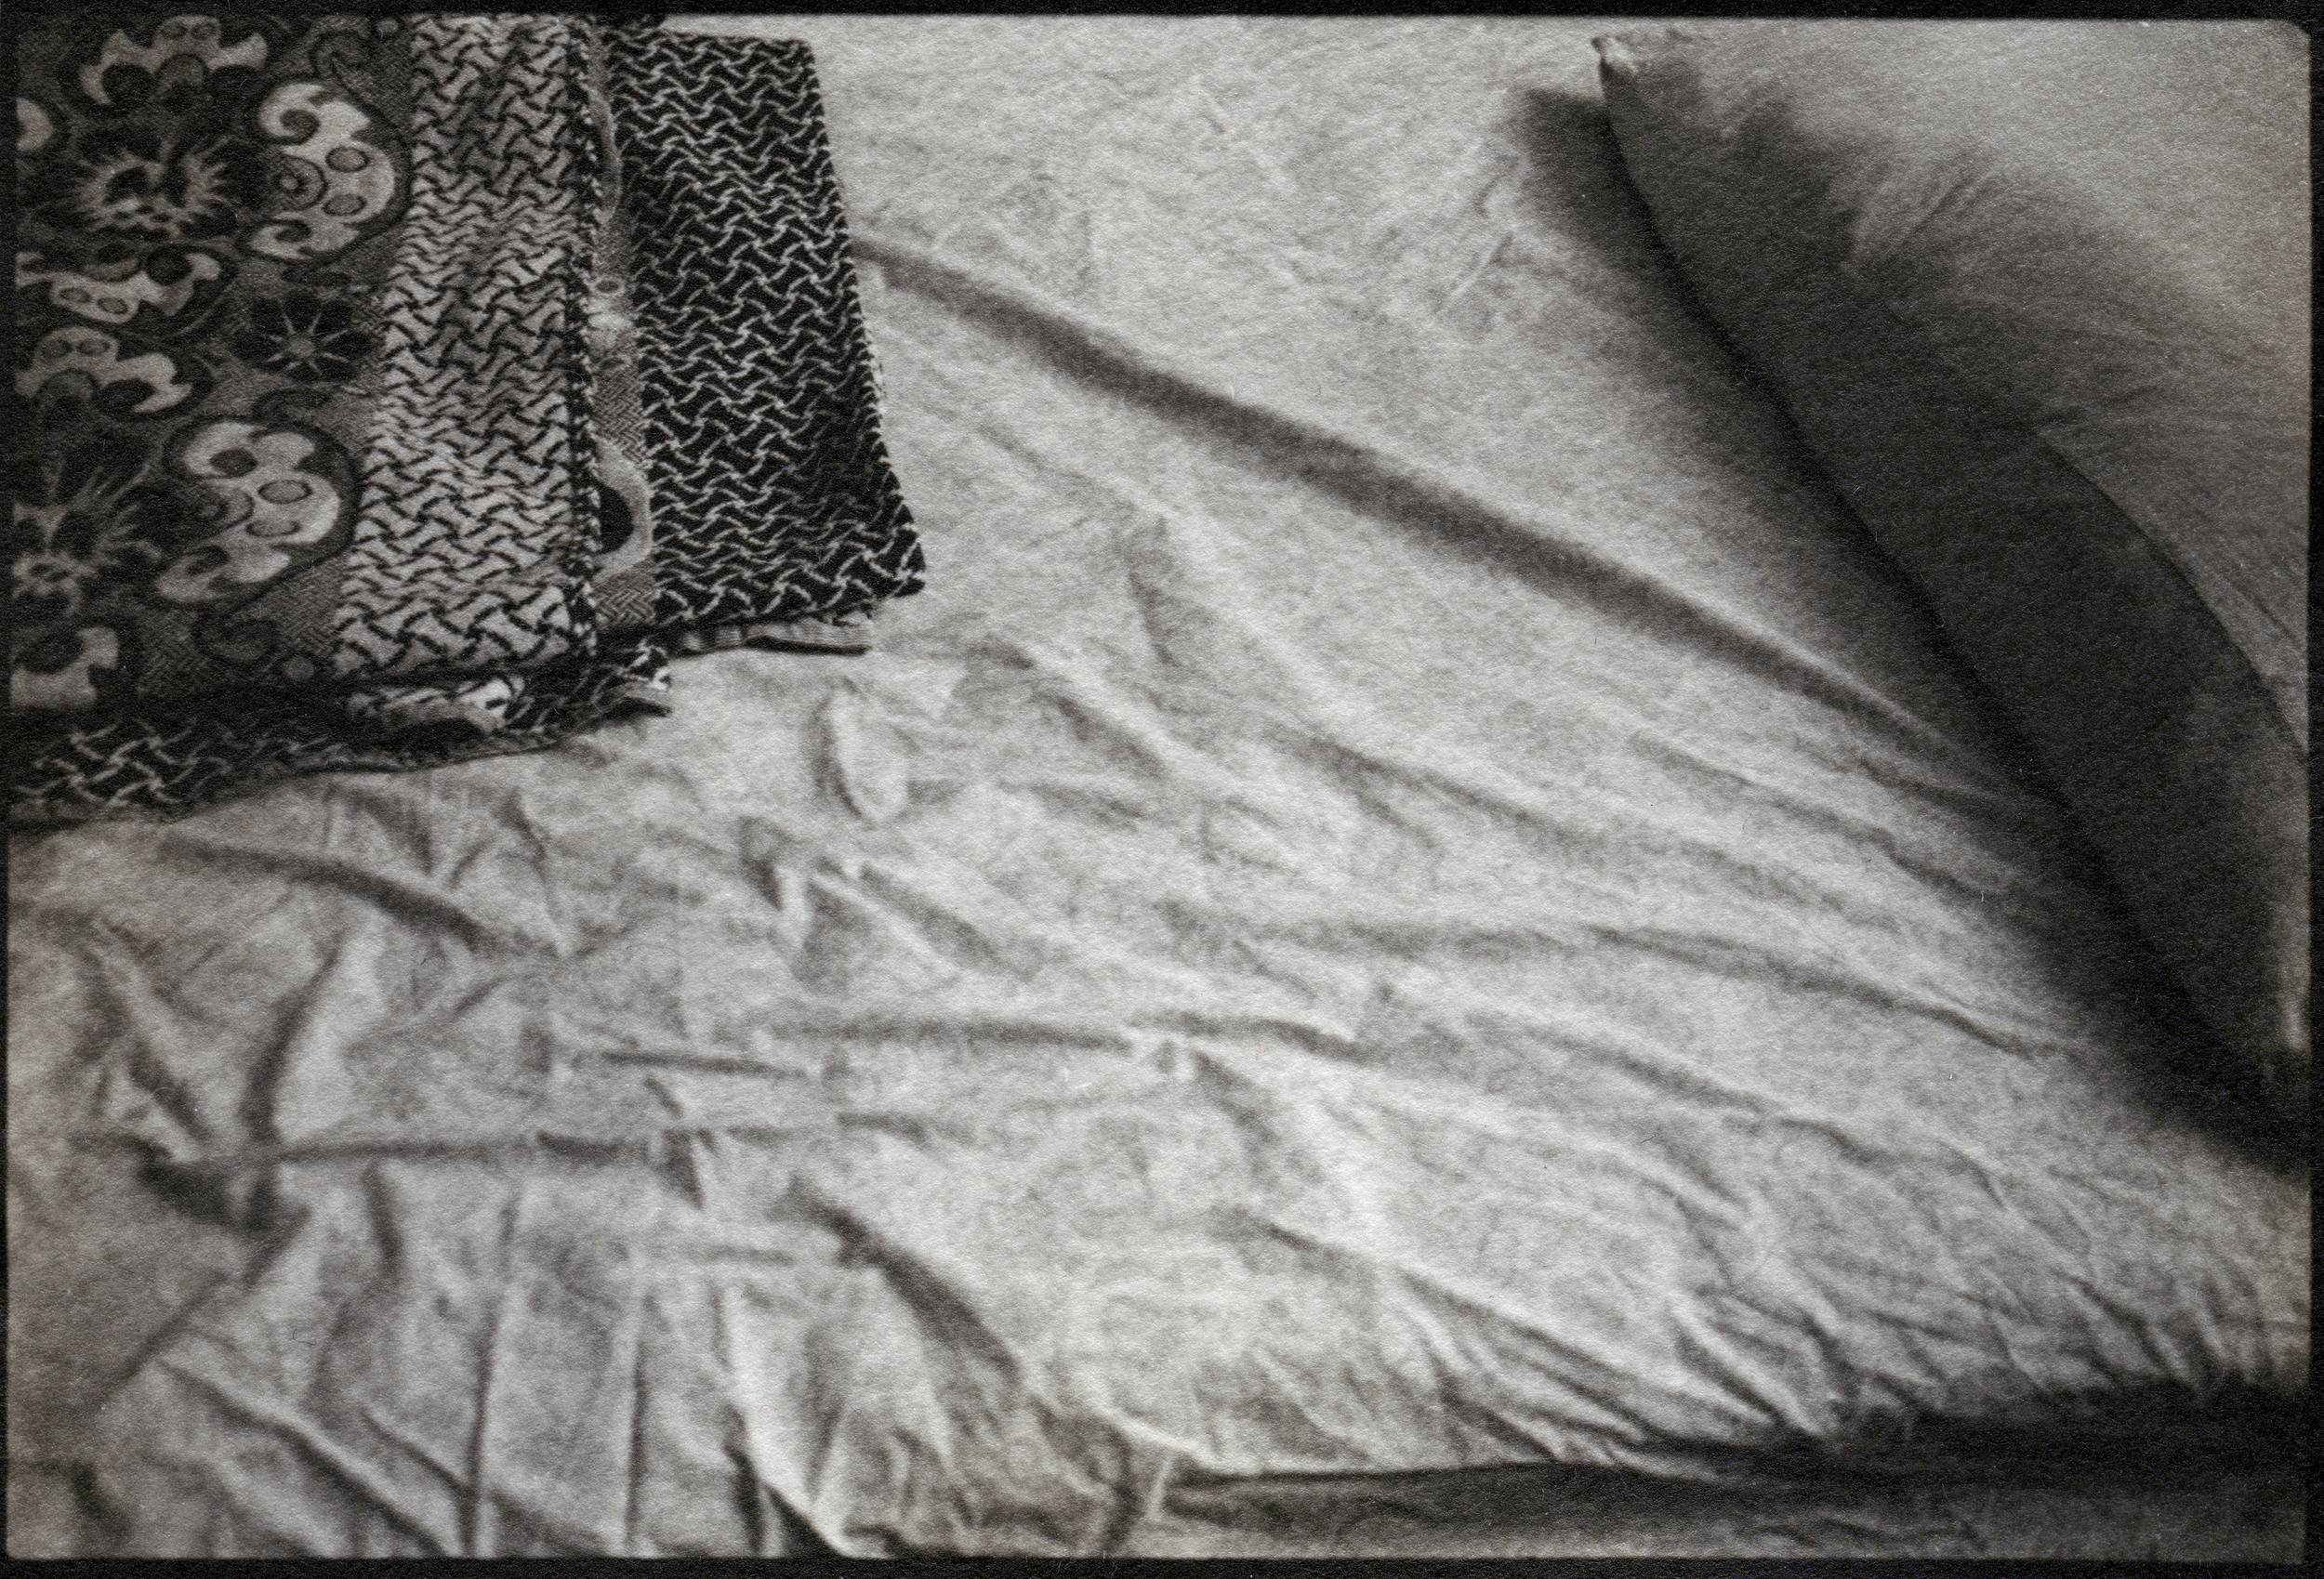 Temporary Bed    Silver Gelatin Print, Switzerland, 2014